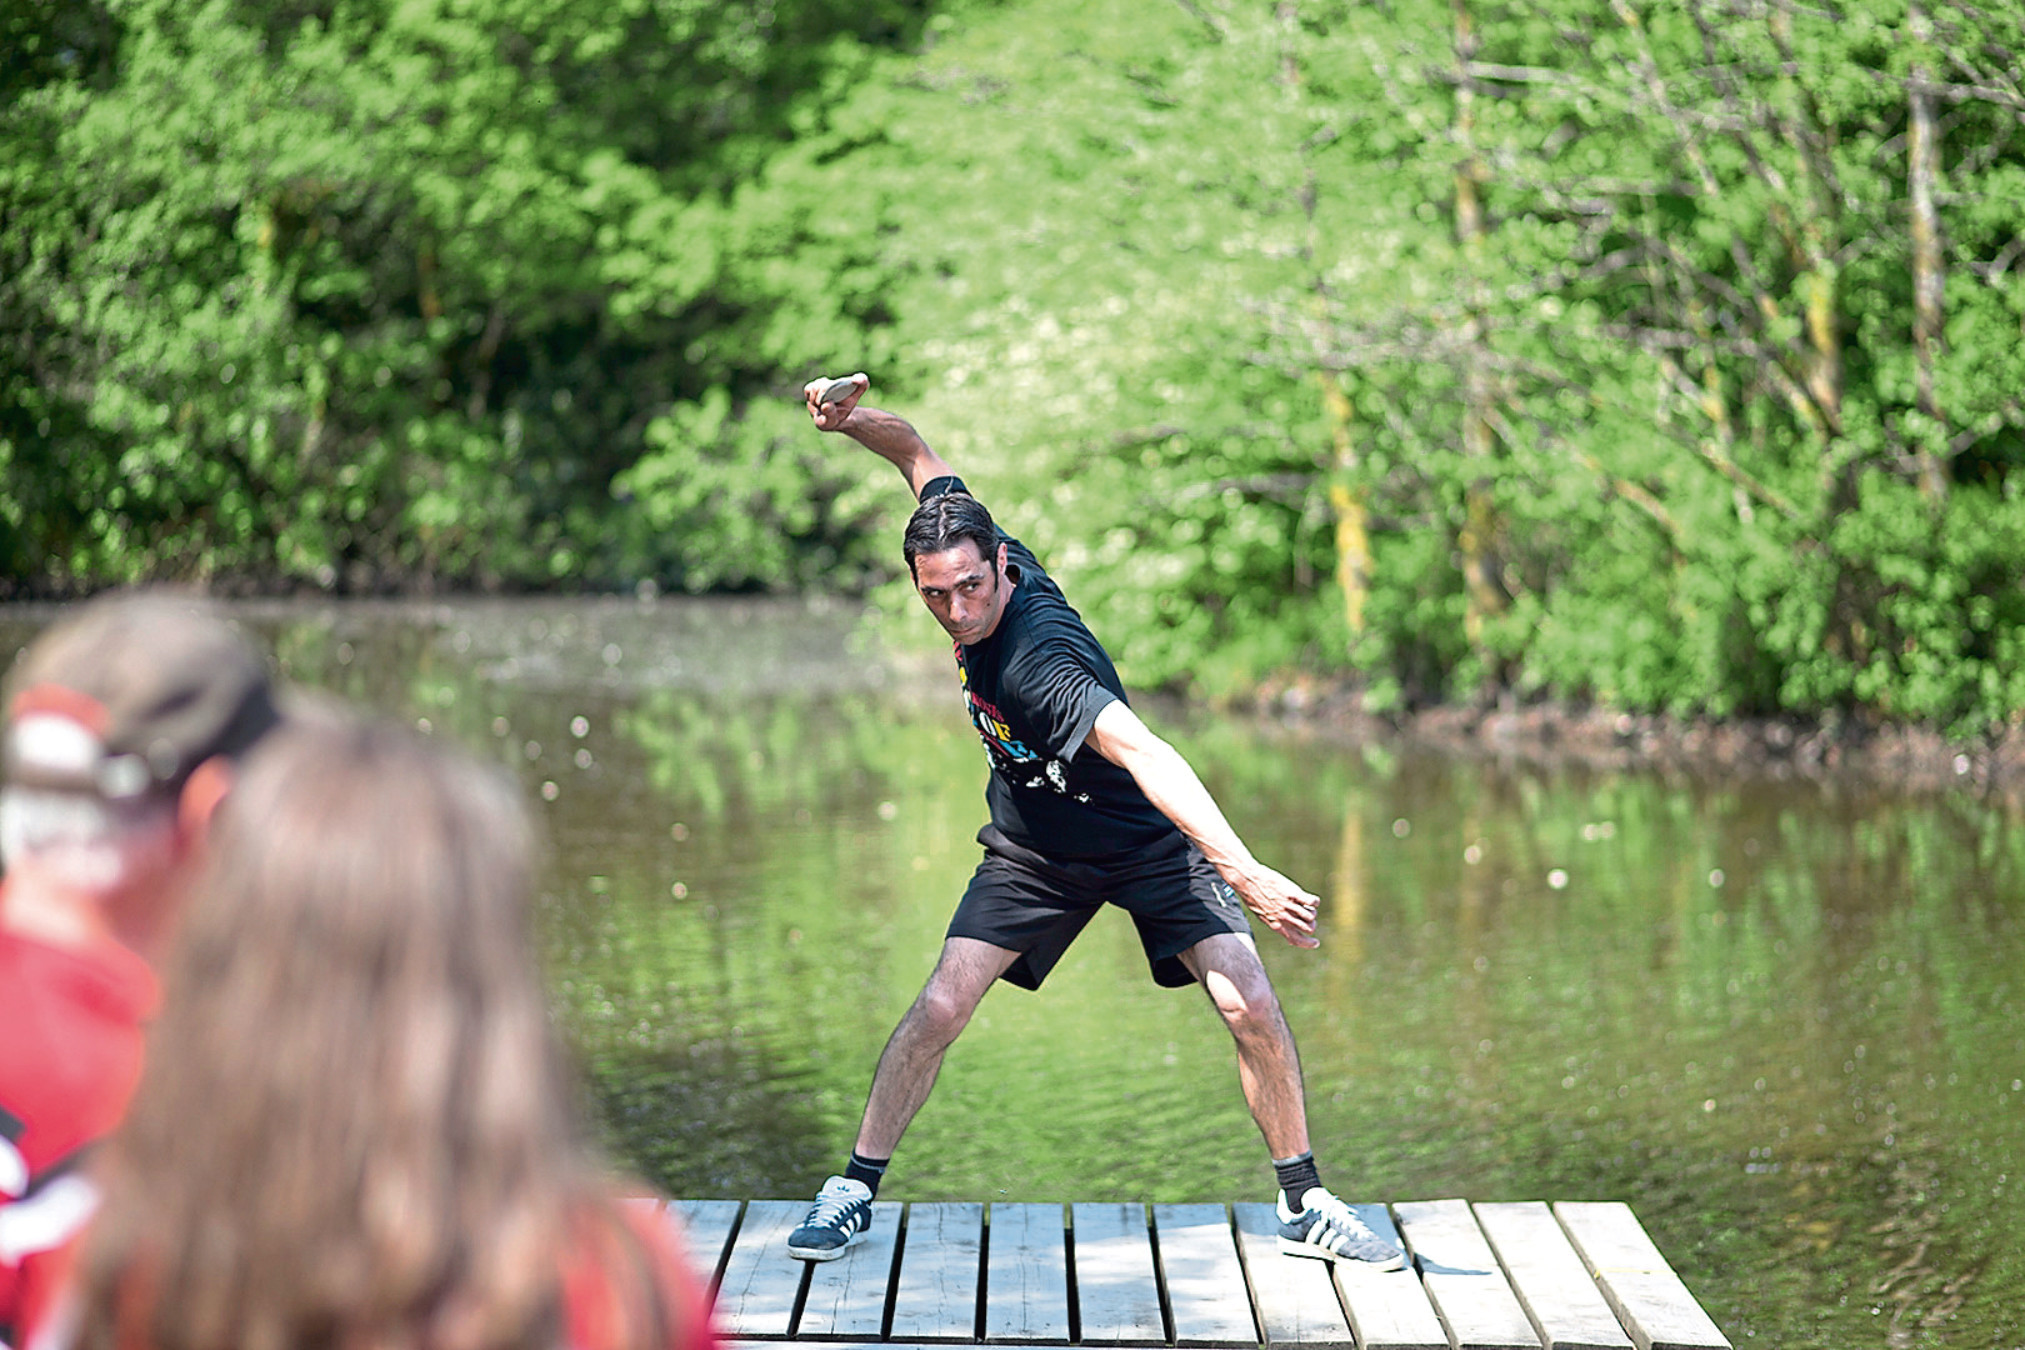 Dougie Isaacs from Blairgowrie achieved the feat during a skimming competition in Wales, two years after setting the record of 351ft